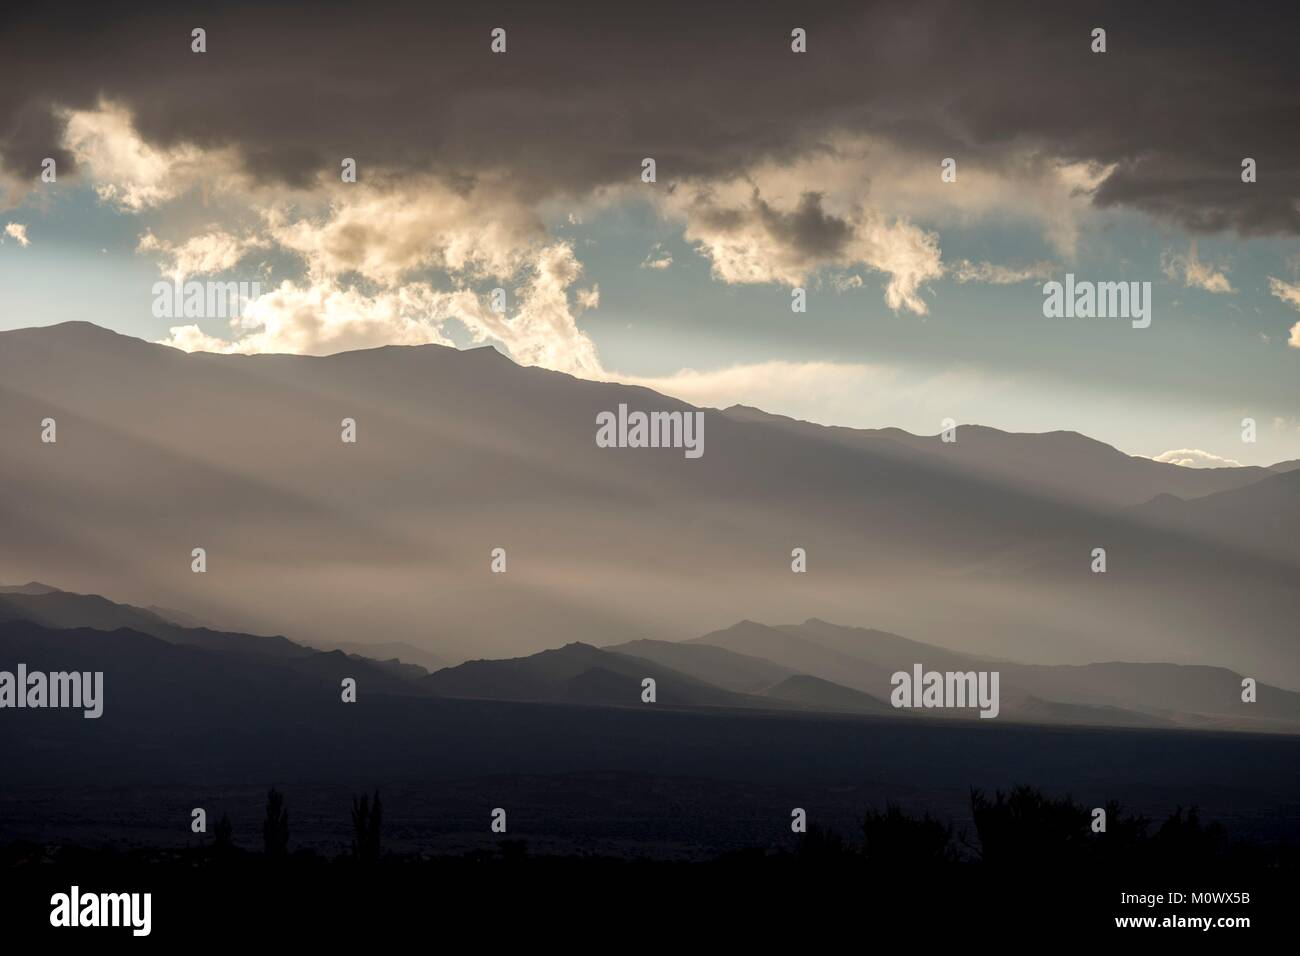 Argentine,Catamarca province,sunset over the Cordillere,Andes mountains - Stock Image